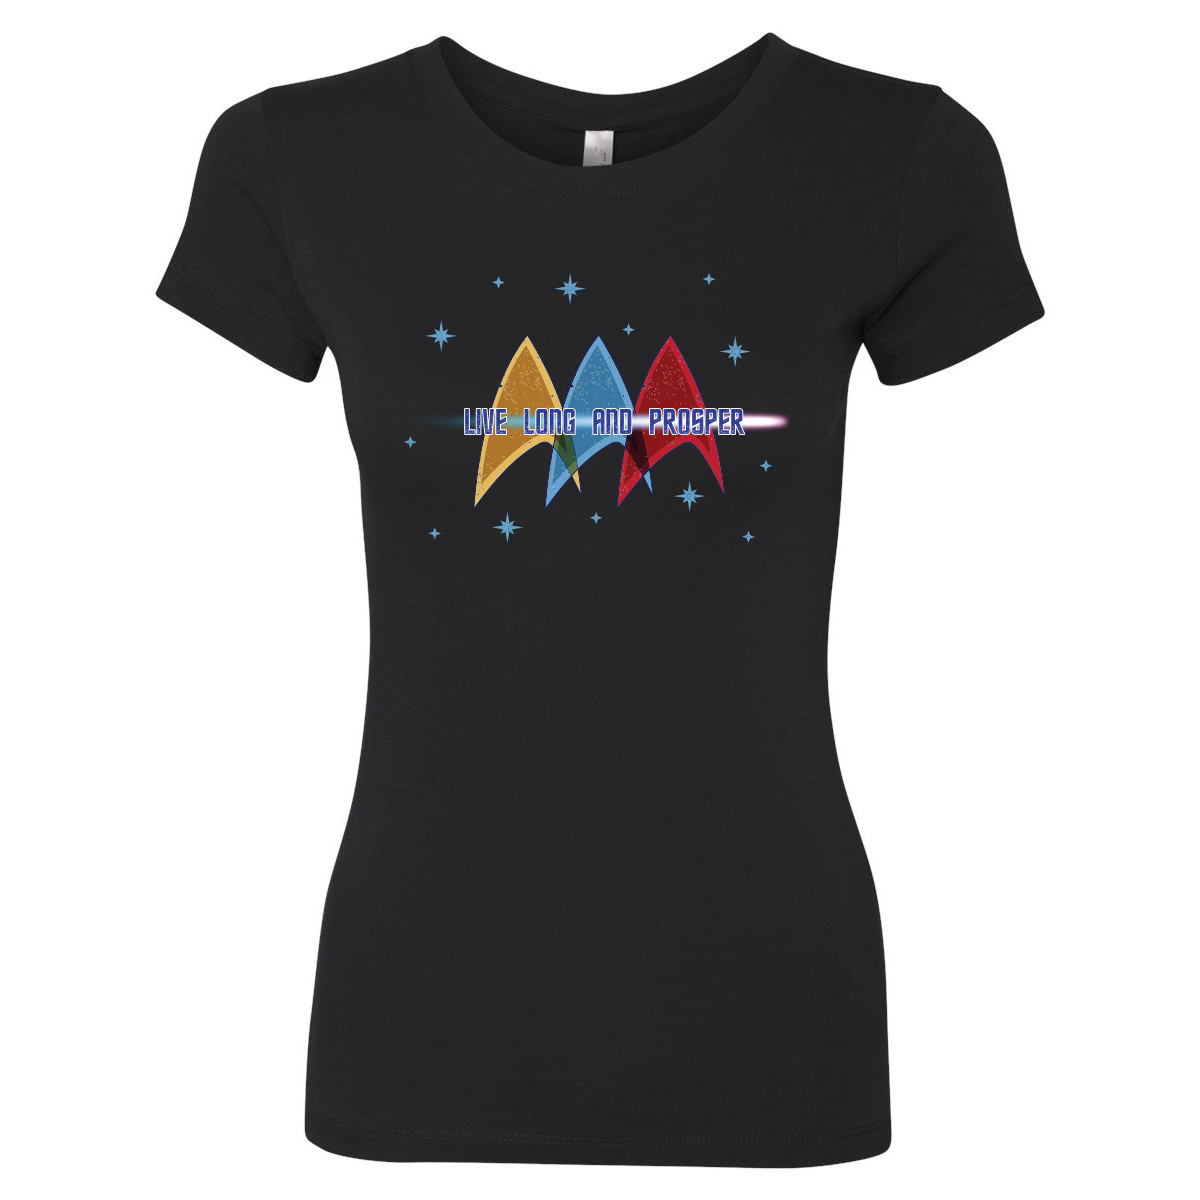 Star Trek Live Long and Prosper Women's T-Shirt